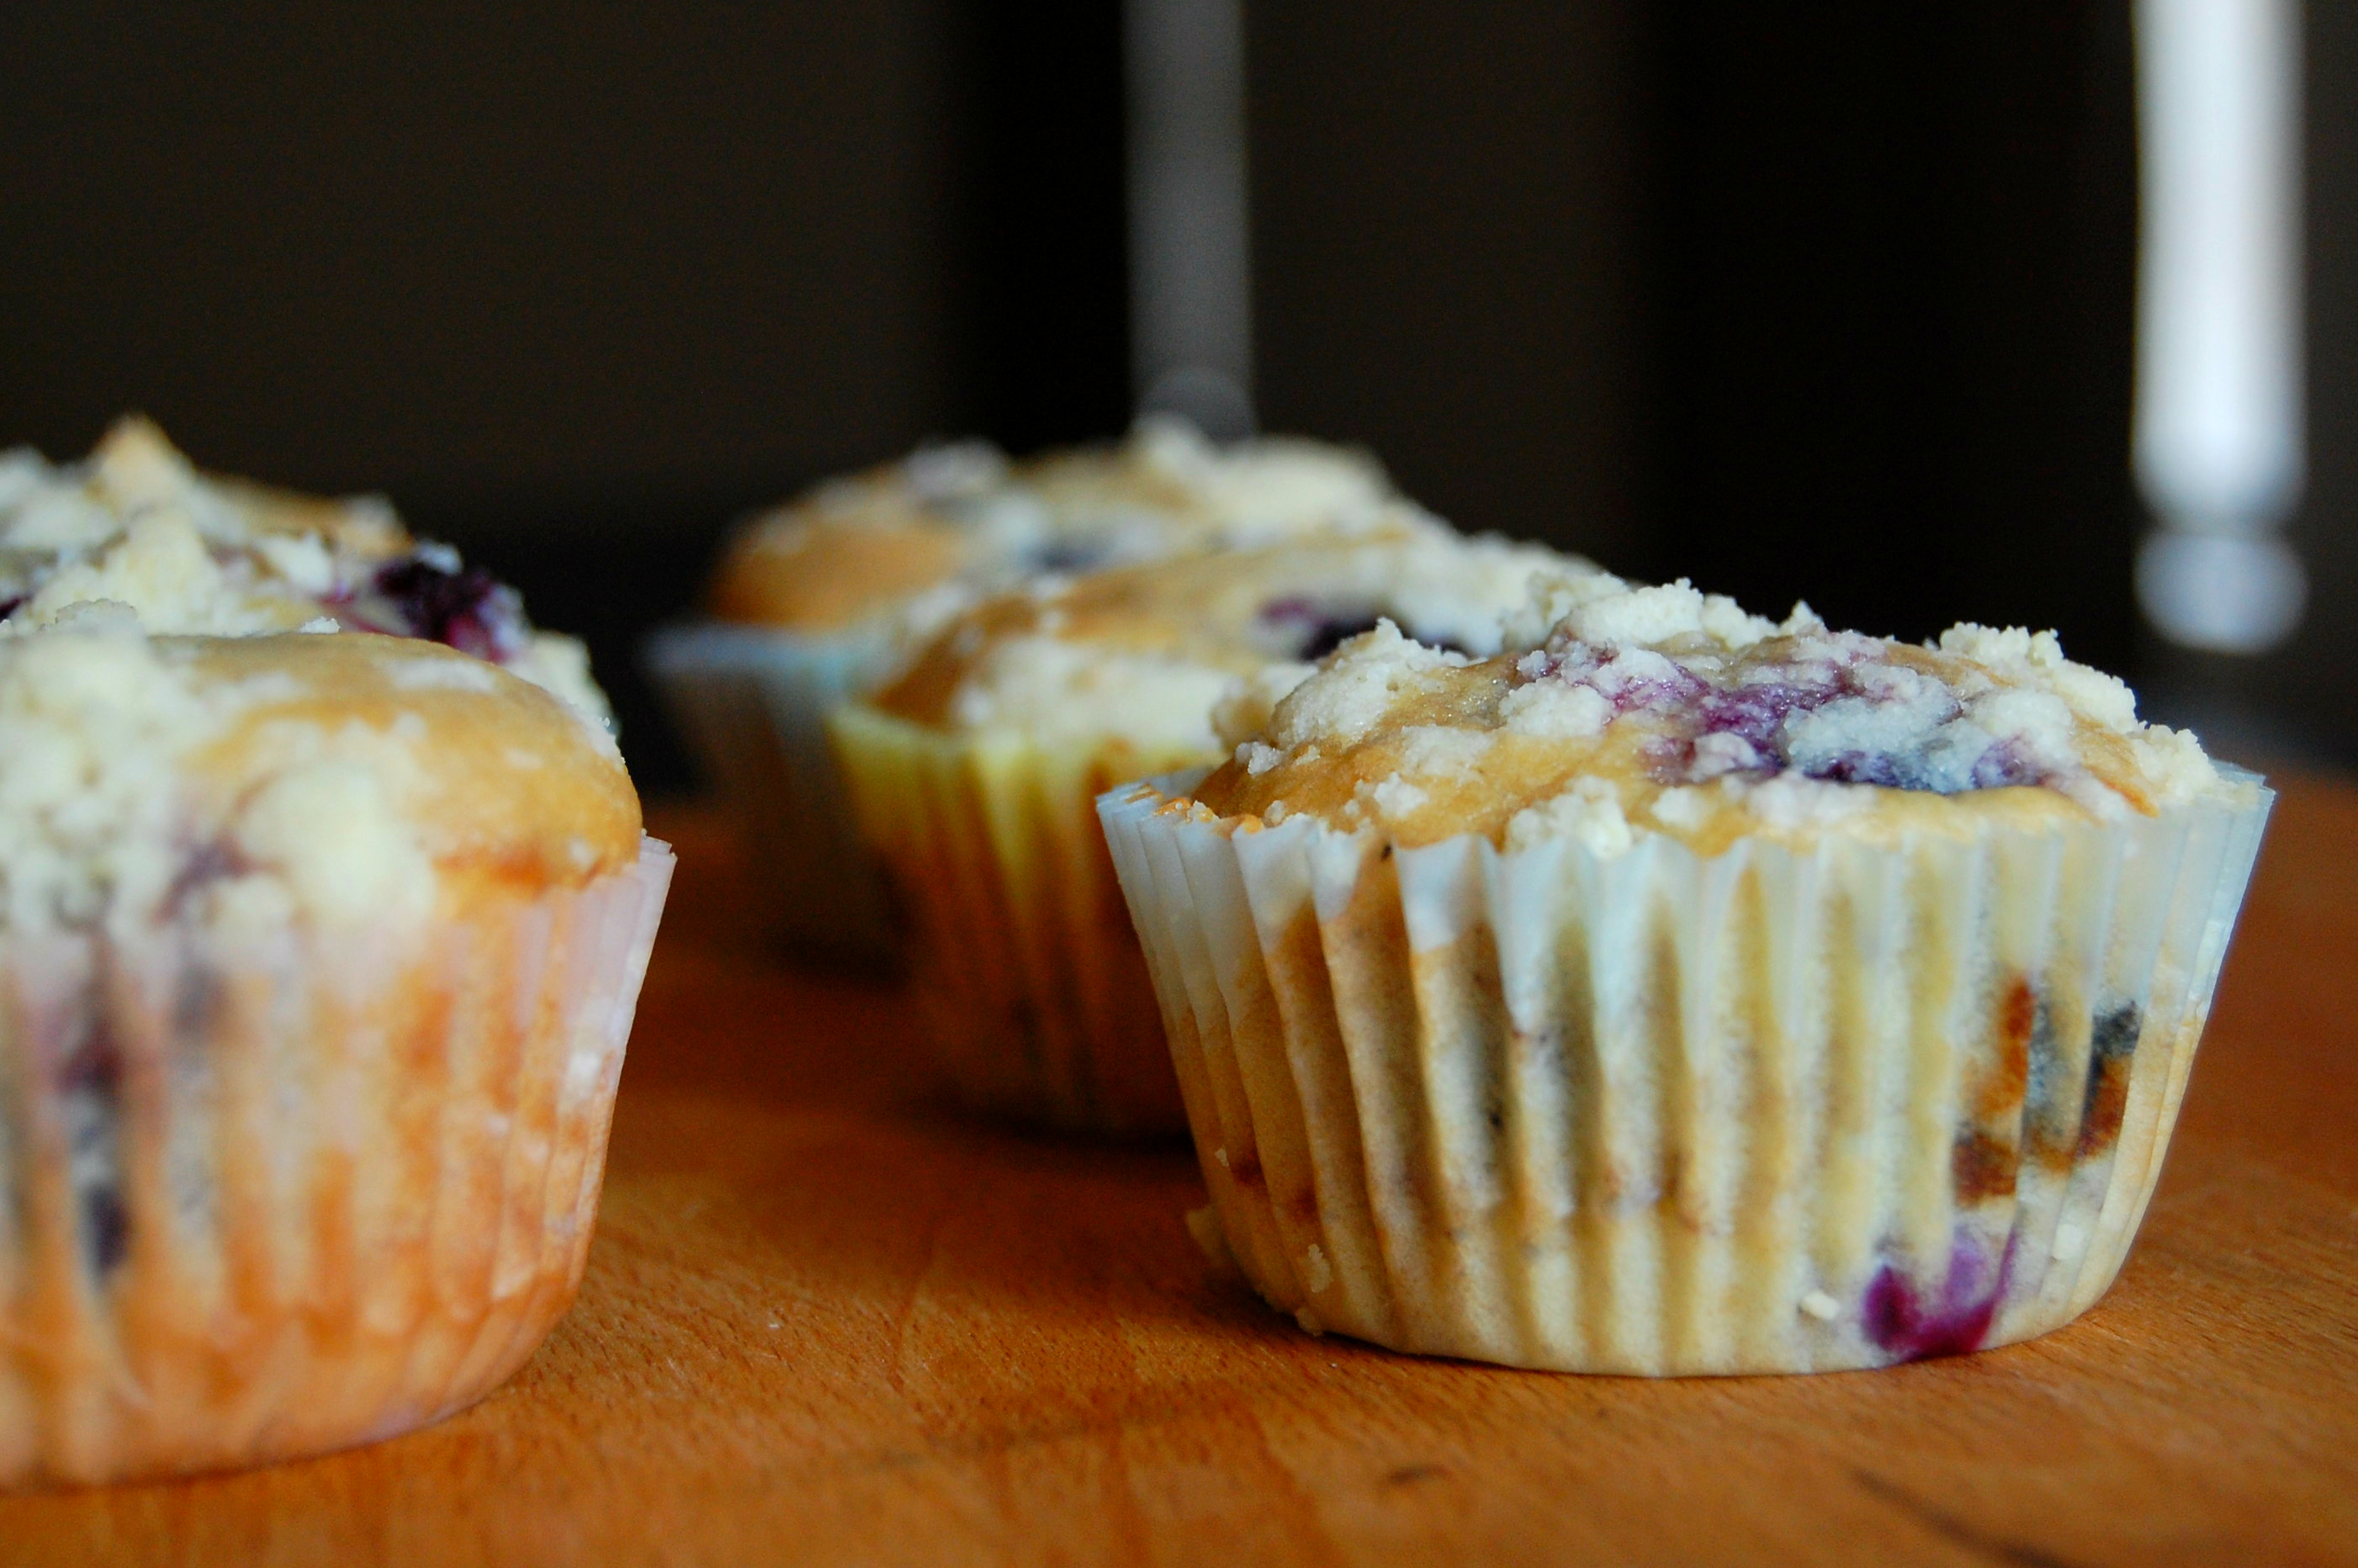 bberry muffin 3